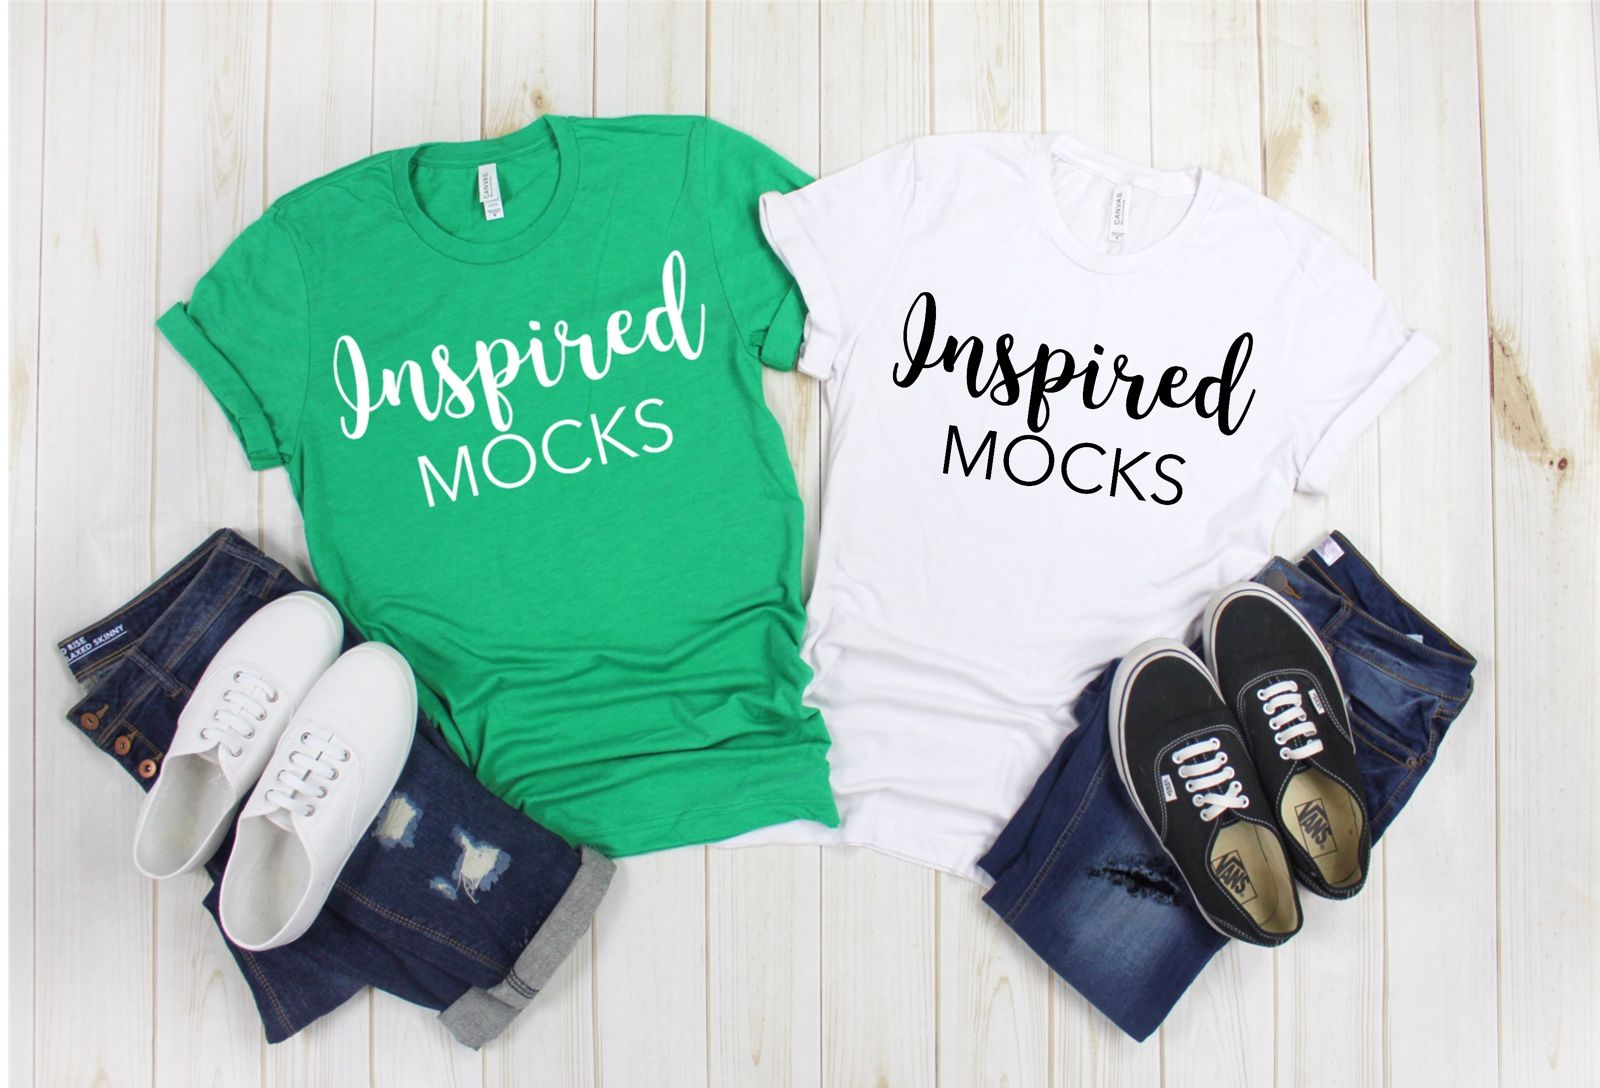 Download Bella Canvas 3001 White And Green Tshirt Mockup Shirt Mockup Green T Shirt Mock Up Flat Lay M Shirt Mockup Clothing Mockup Mockup Free Psd